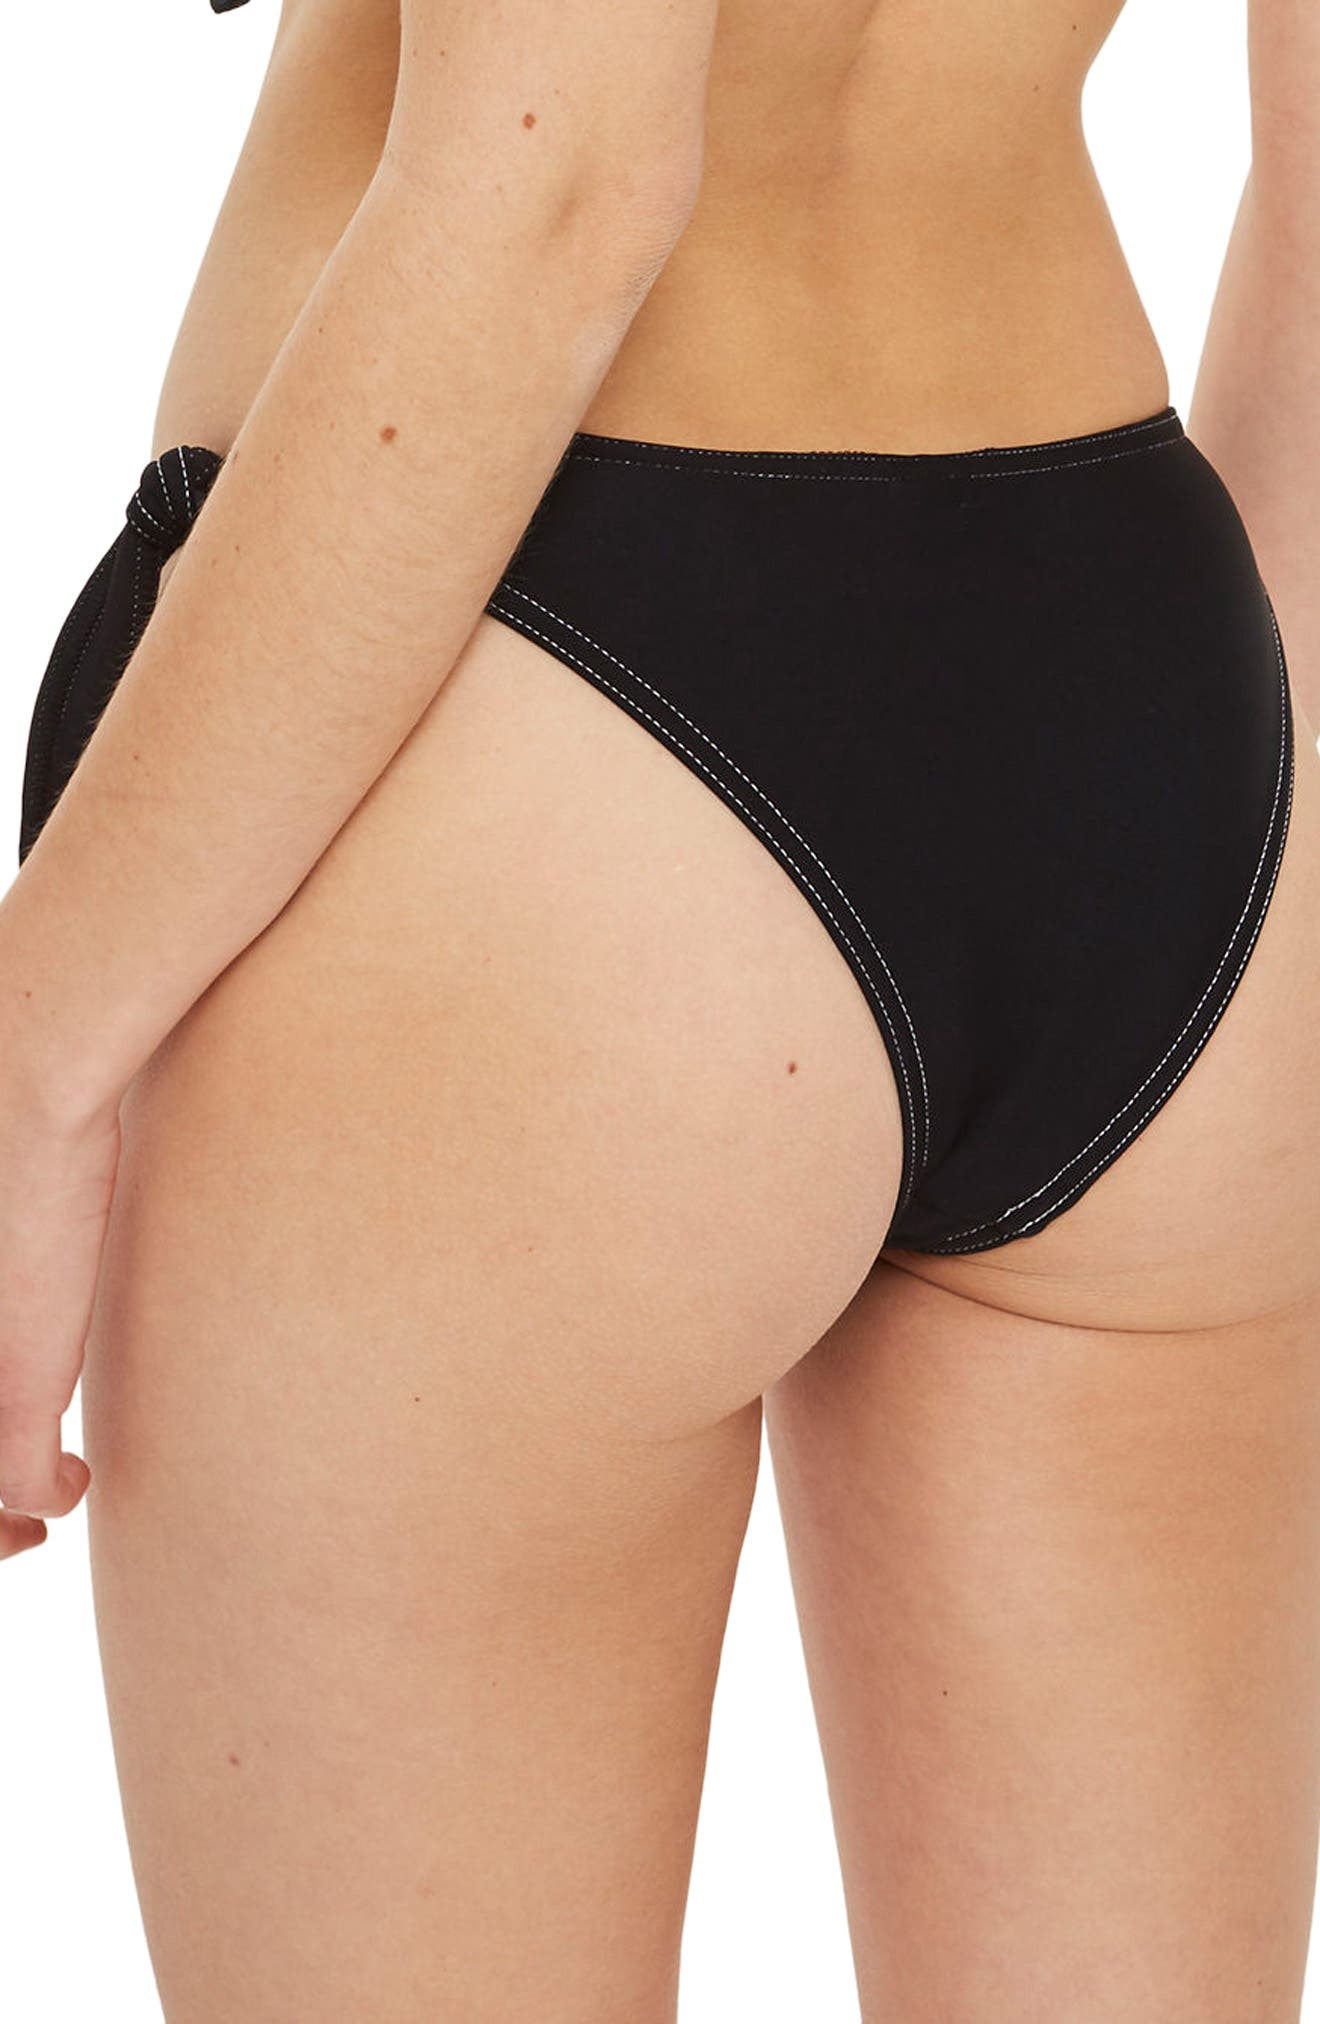 Wide Tie Swim Bottoms,                             Alternate thumbnail 3, color,                             Black